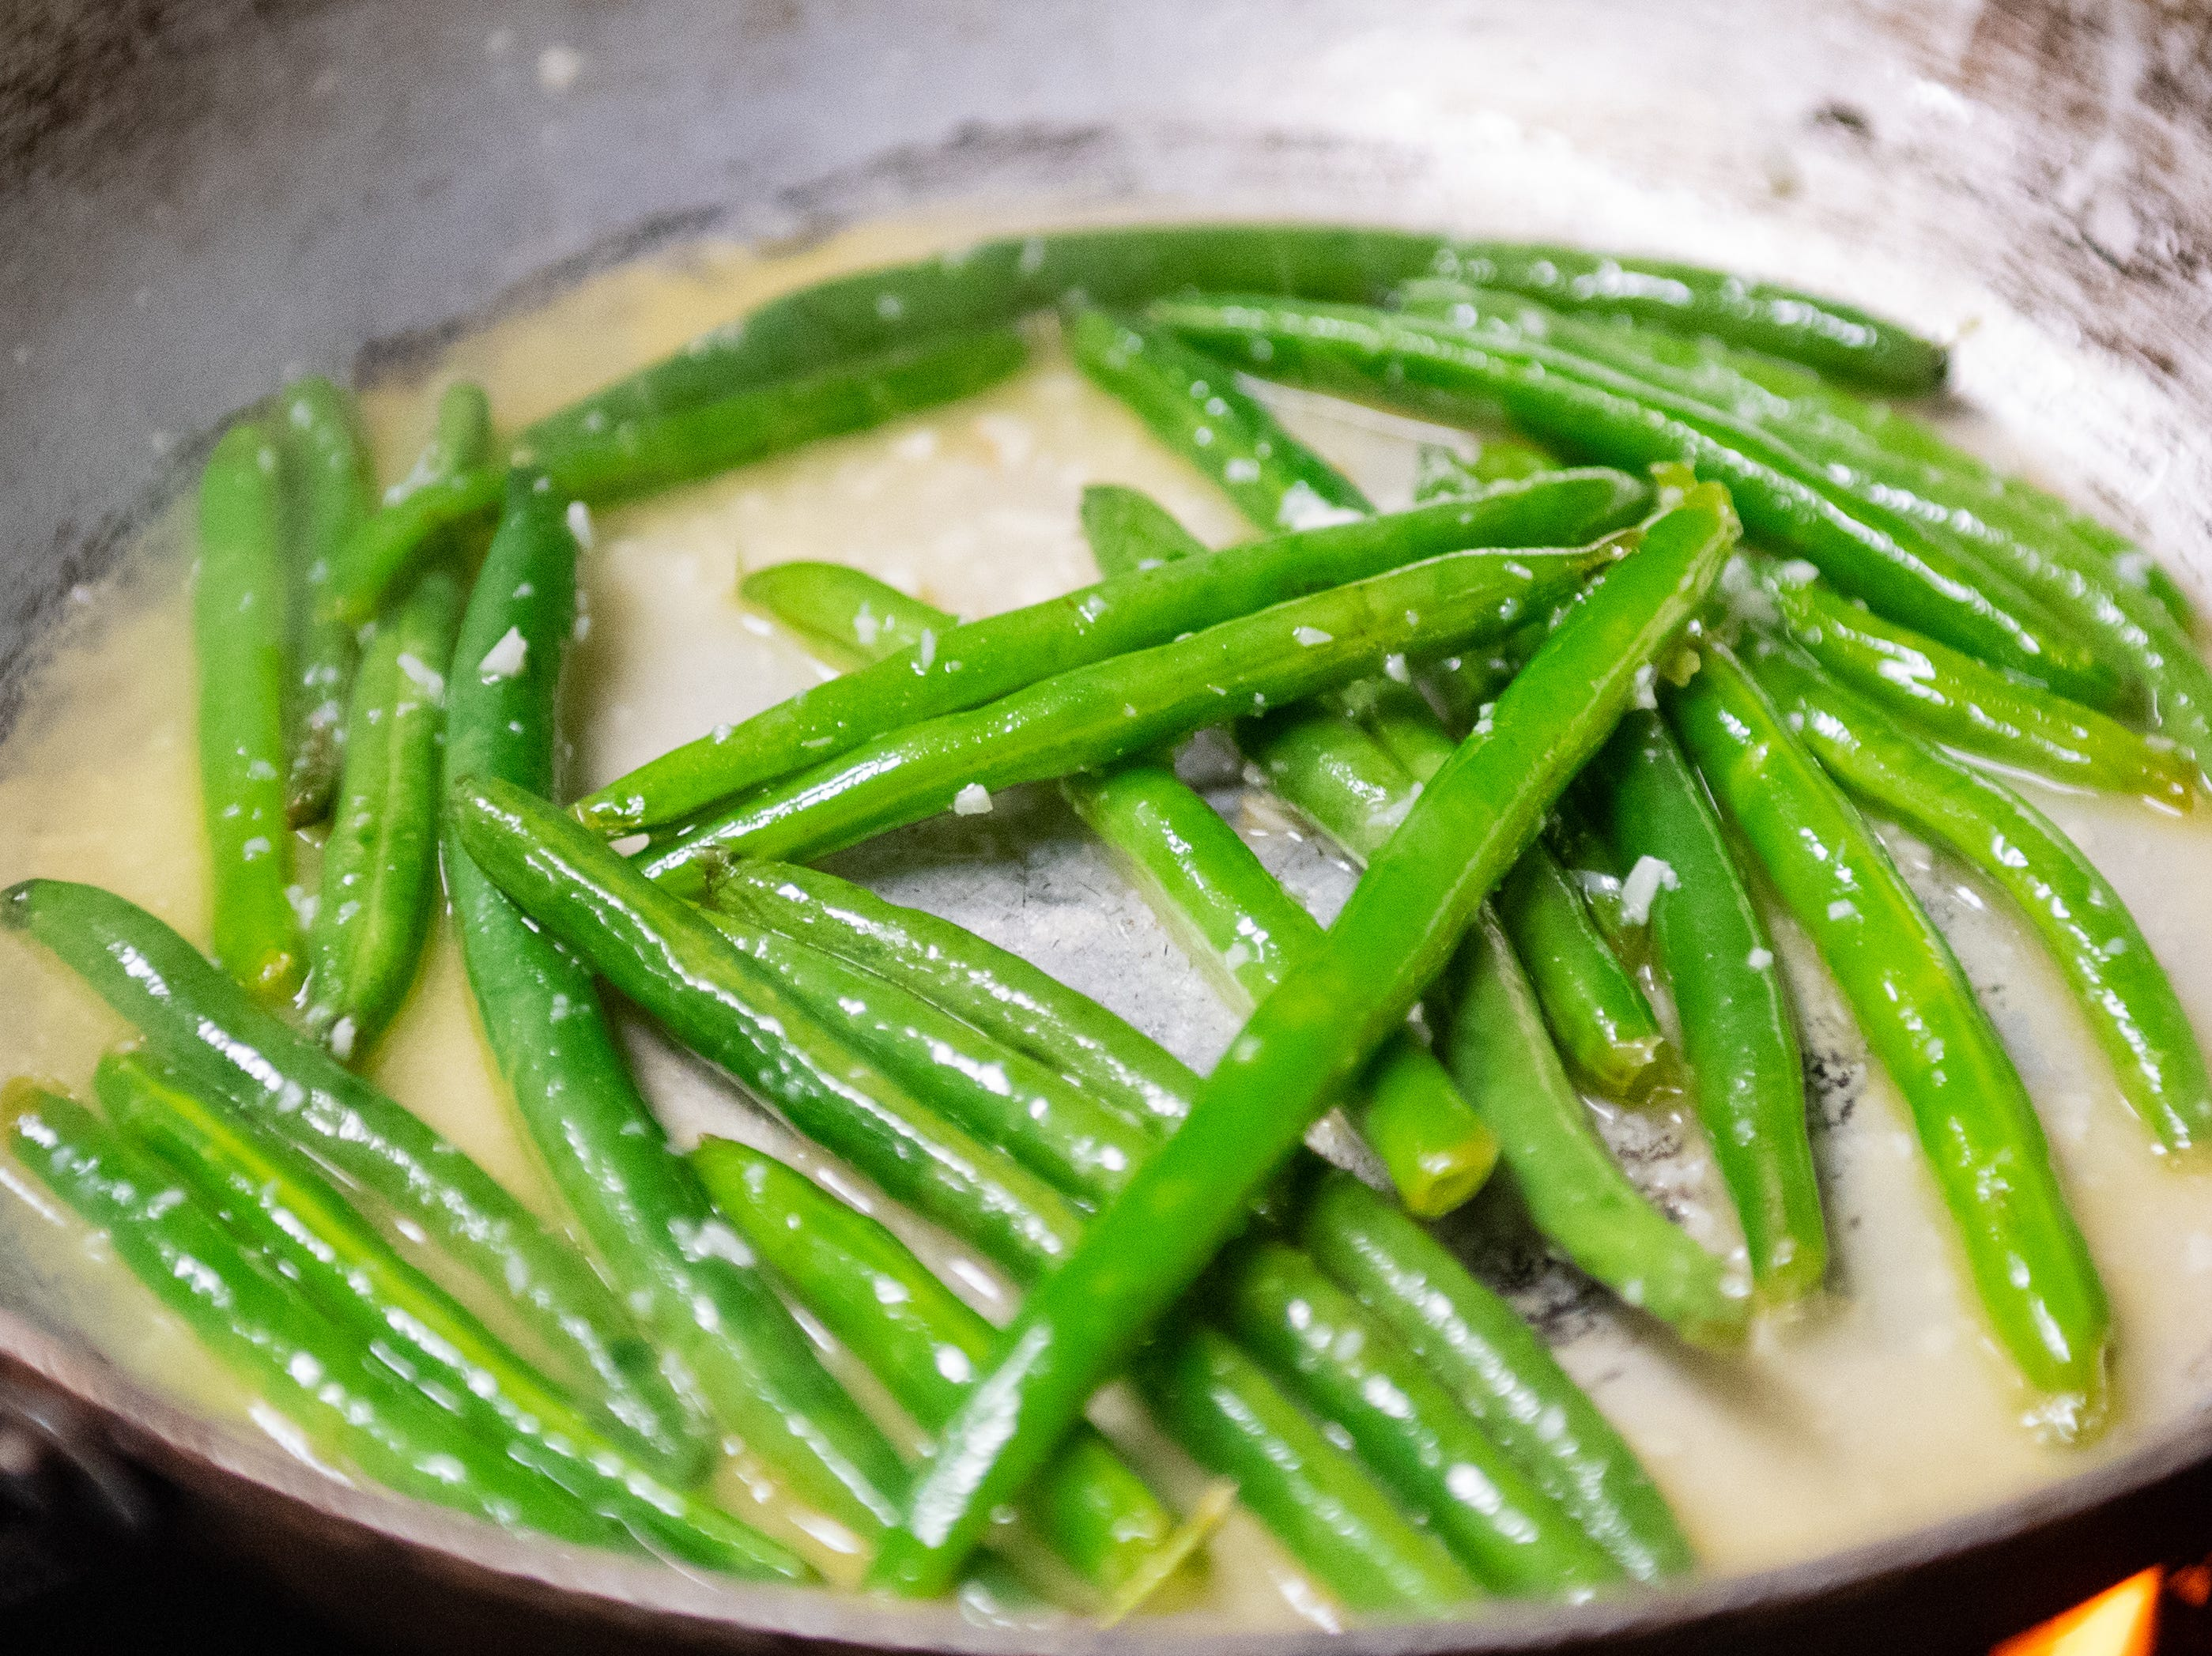 The asparagus in the Bottling Works kitchen has been thoroughly seasoned, February 22, 2019.